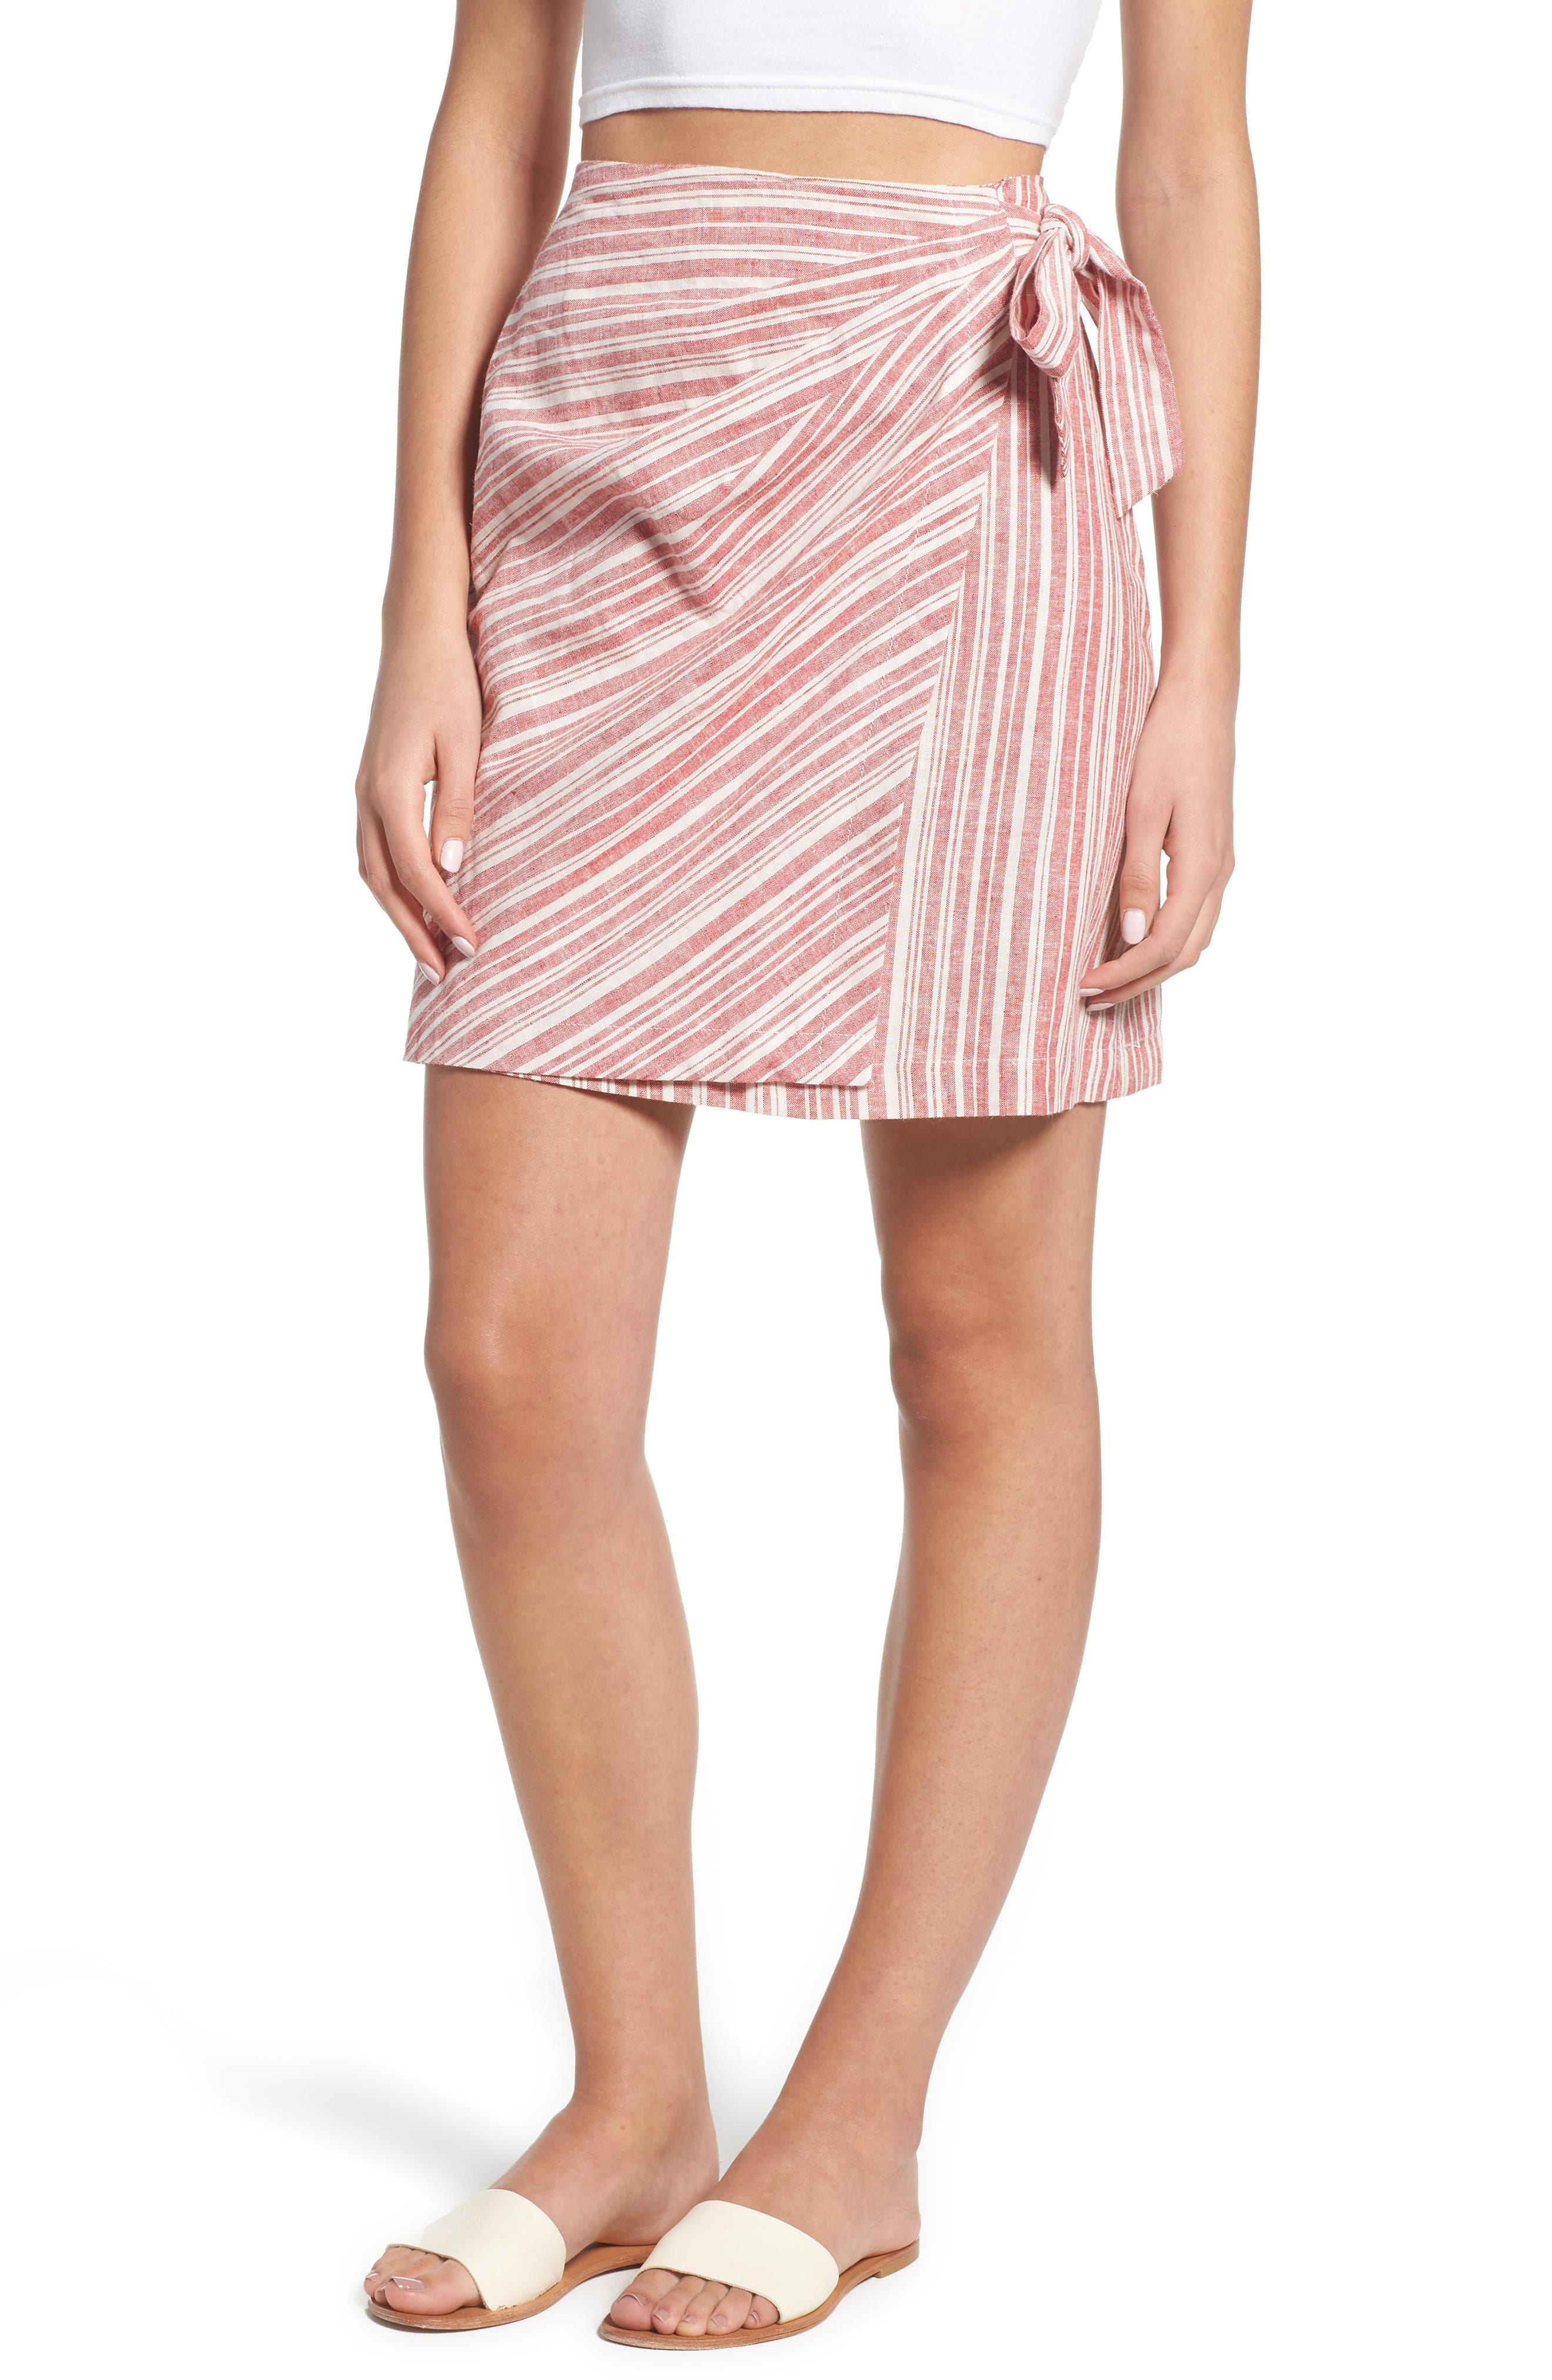 High Waist Wrap Skirt in Taupe. - size 1 (XS/S) (also in 0 (XXS/XS)) James Perse Where To Buy Low Price lcYQ1p